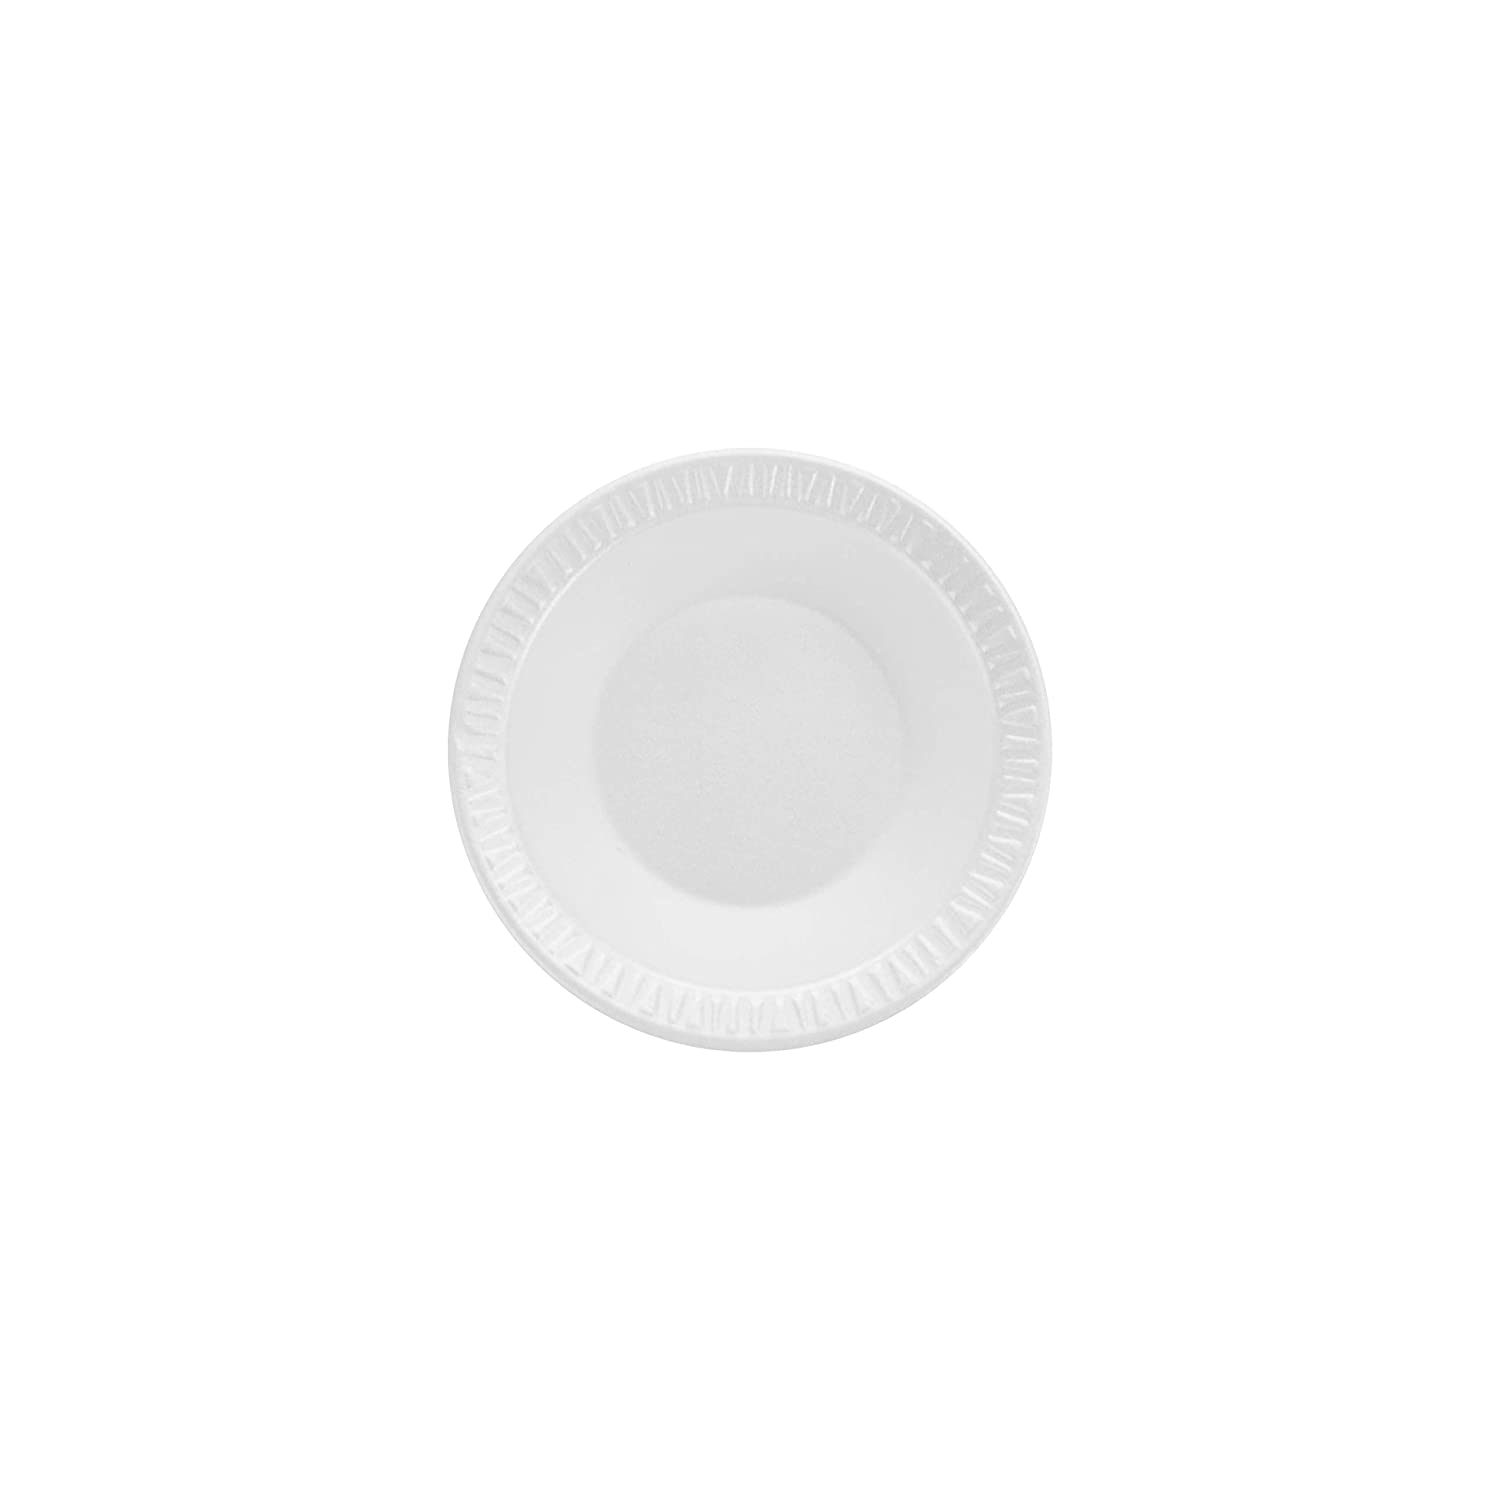 Dart 35BWWC 3.5-4 oz White Unlaminated Foam Bowl (Case of 1000)